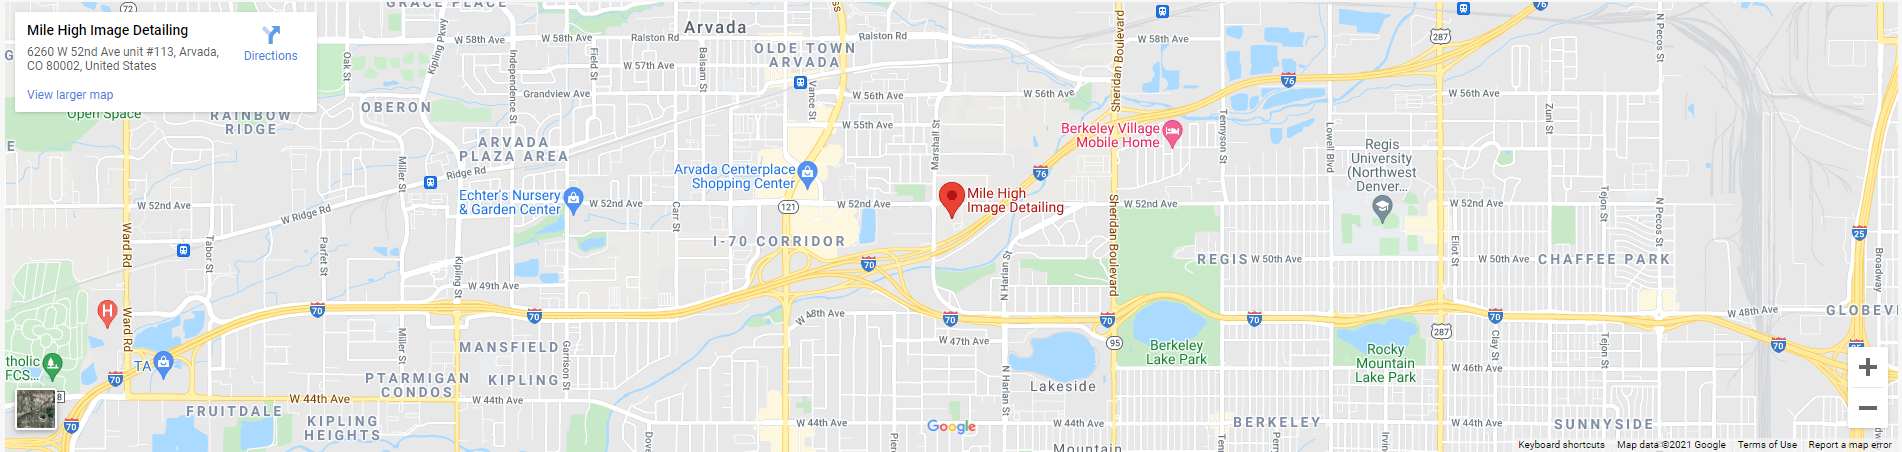 footer-map-arvada